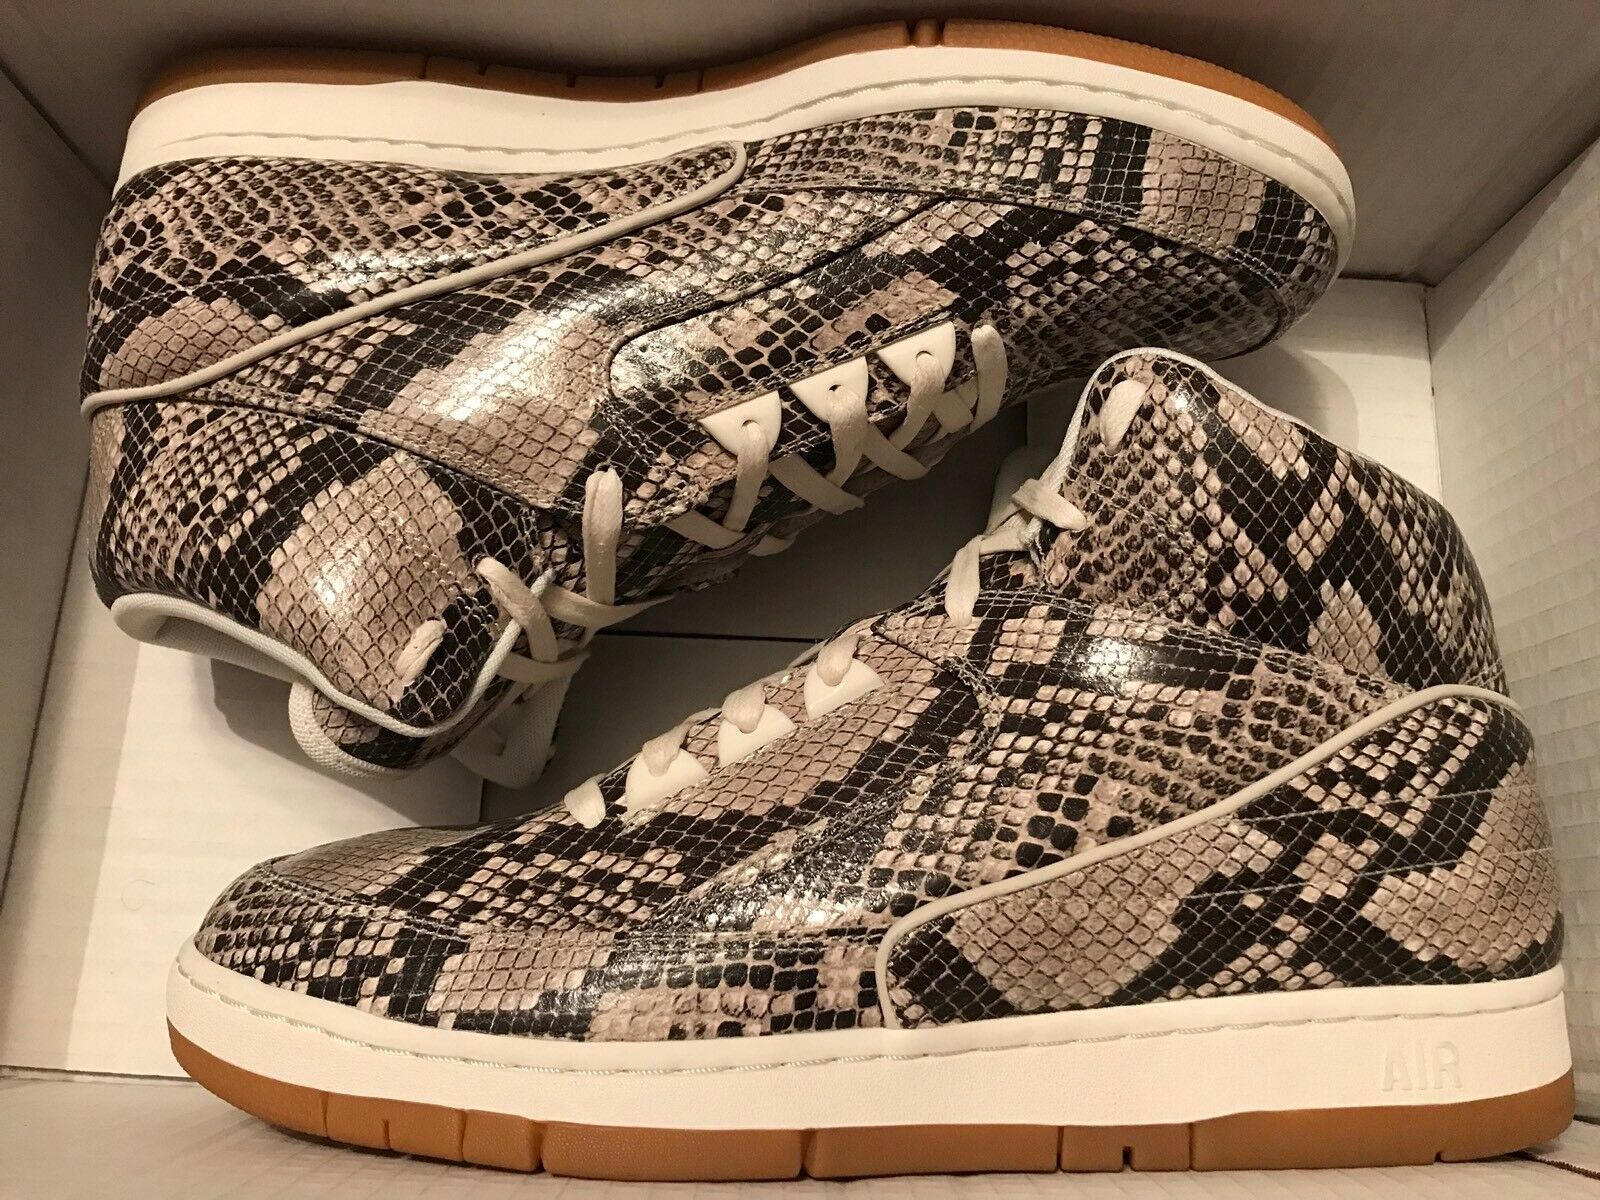 NIKE AIR PYTHON PRM Brown Snakeskin 705066-201 Size 13 New DS Rare Limited